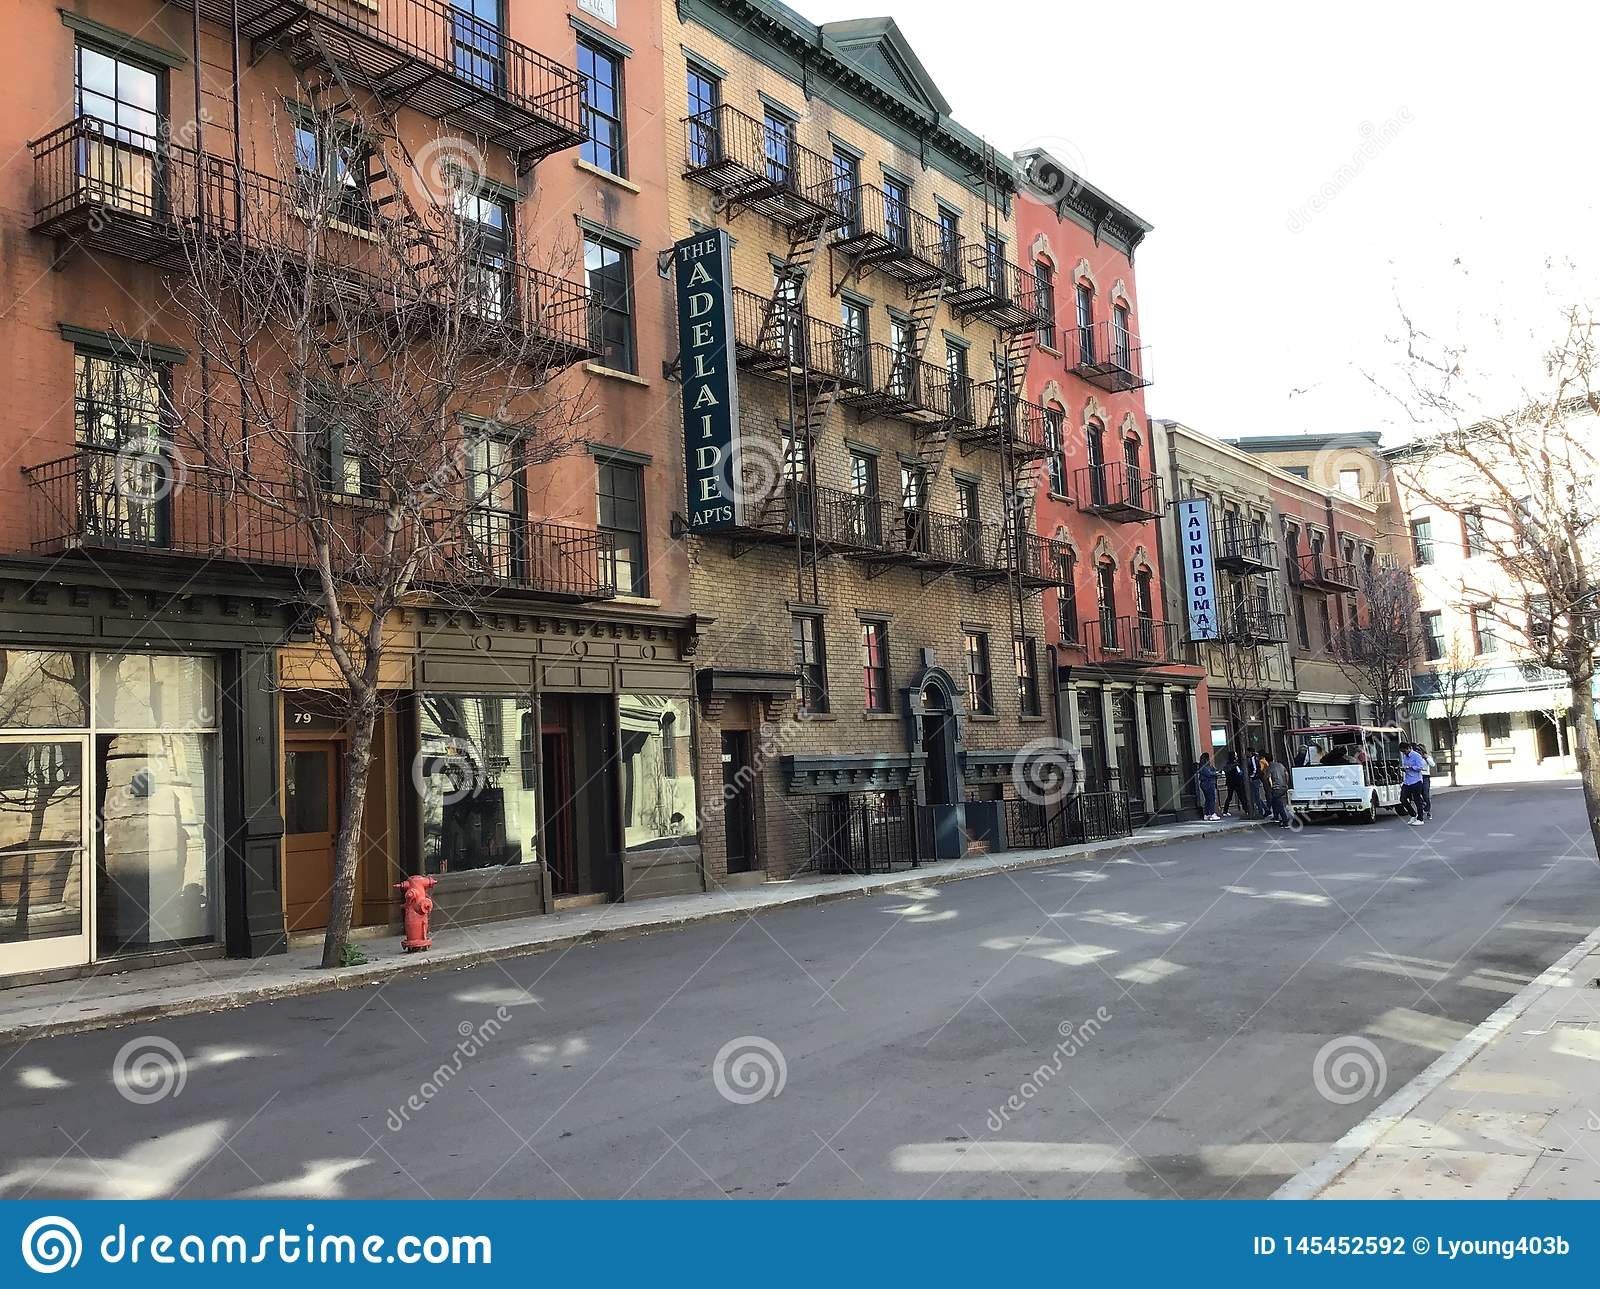 This is a streetview located on a studio lot simulating a historical town setting such as New York City where old movies